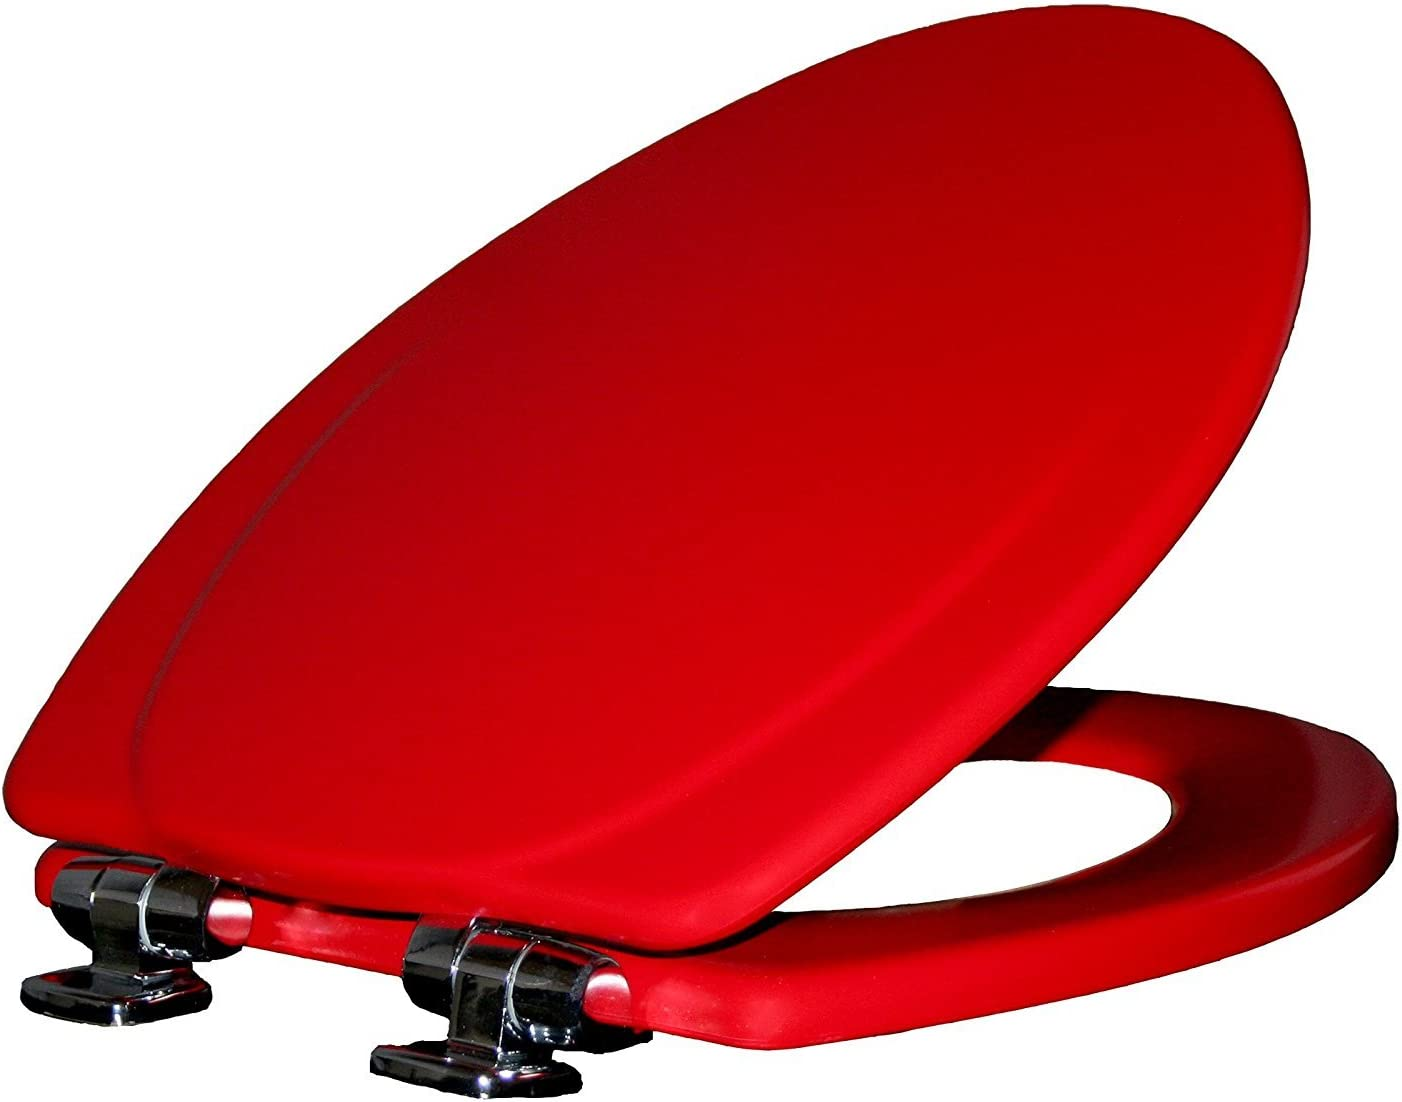 MAYFAIR Toilet Seat with Chrome Hinges will Slow Close and Never Come Loose, ELONGATED, Durable Enameled Wood, Red, 130CHSLB 613